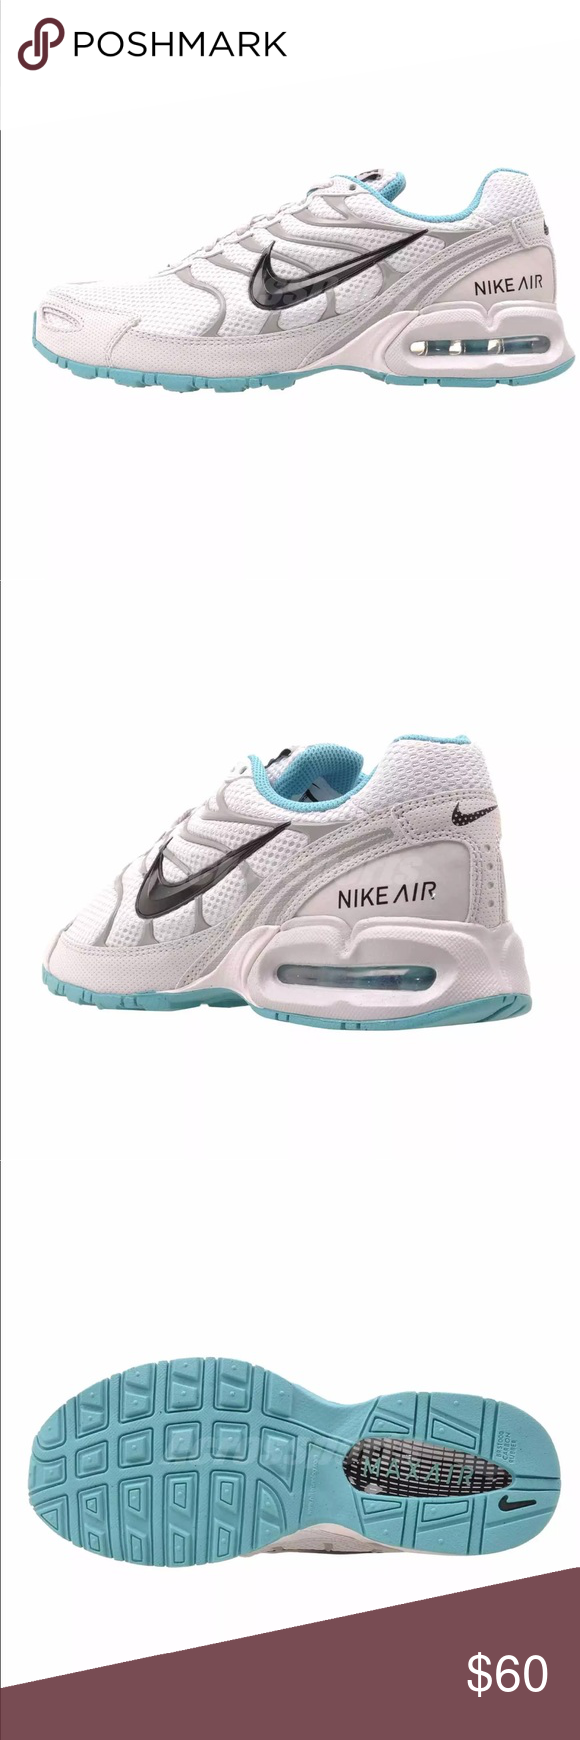 ae2f4e2c3623 Nike Air Max Torch 4 Women Blue Running Shoes Smoke free home Brand new  100% Authentic New with box without top lid Ships within 1 business day out  do ...